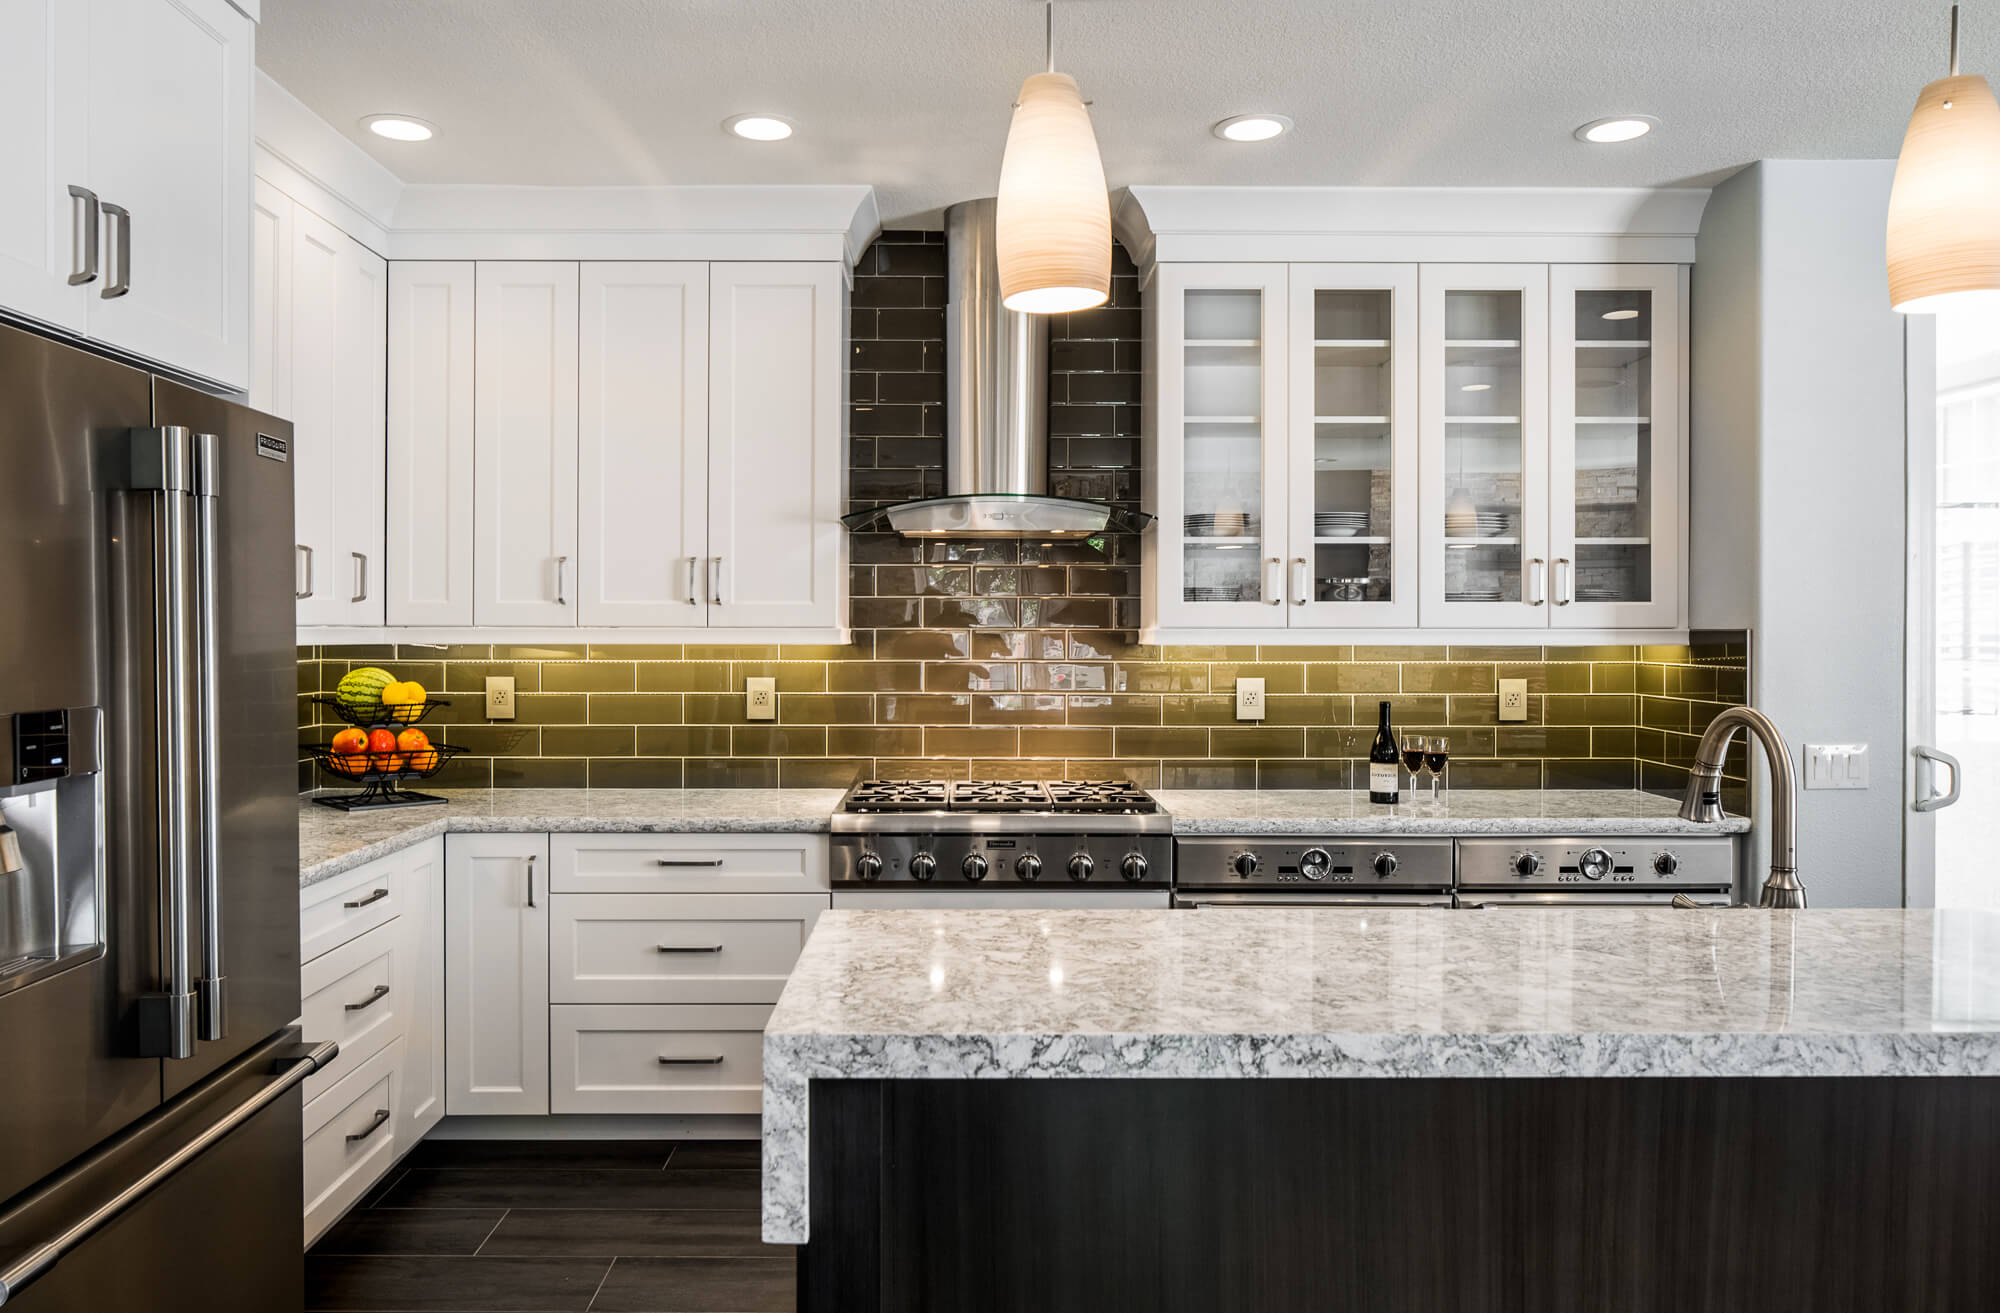 KITCHEN REMODEL MUST-HAVES